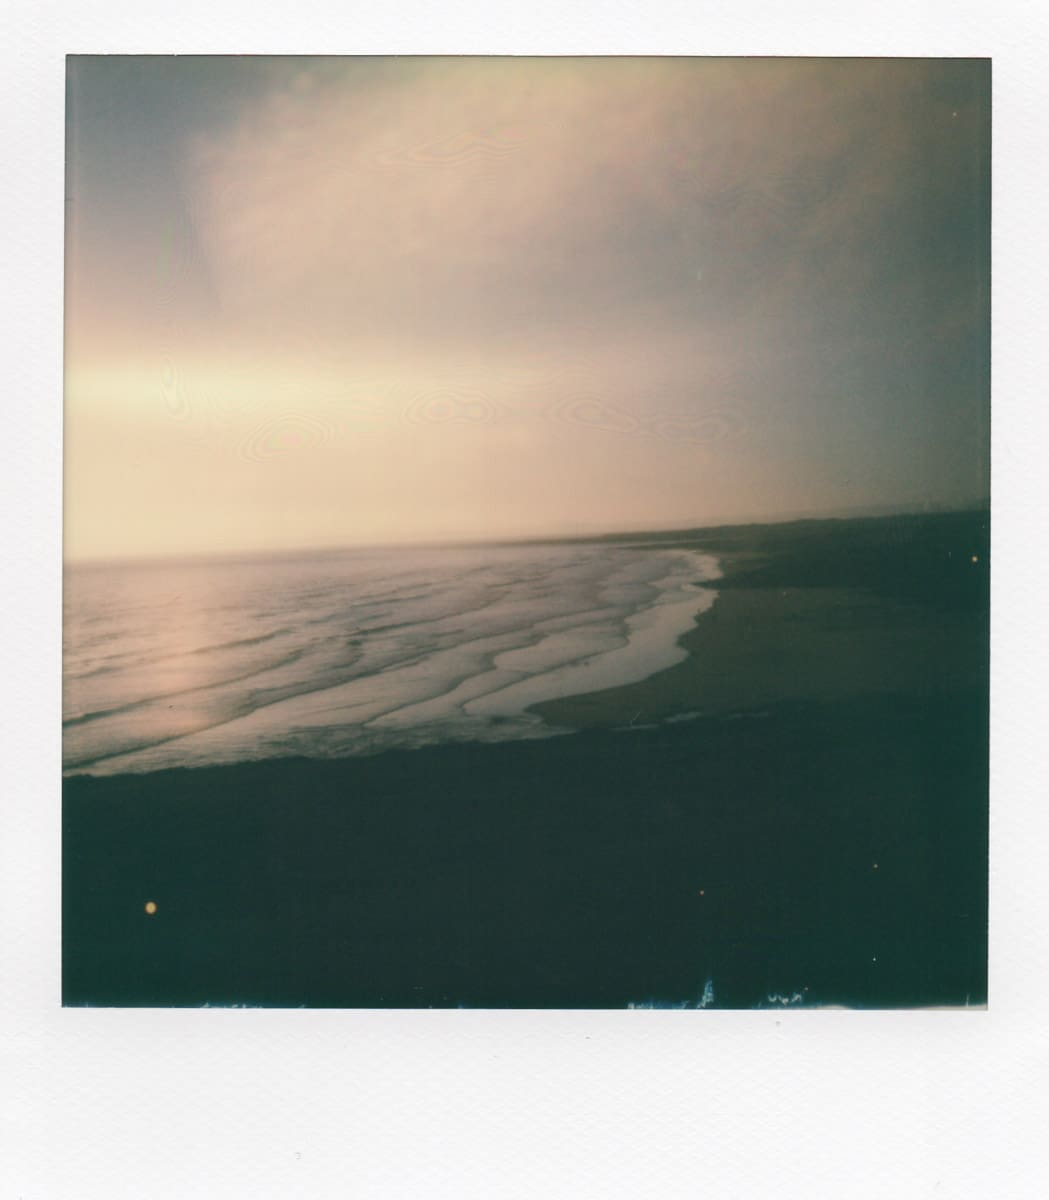 Impossible Project I-Type Color - Polaroid Originals One Step 2 - by Ed Worthington